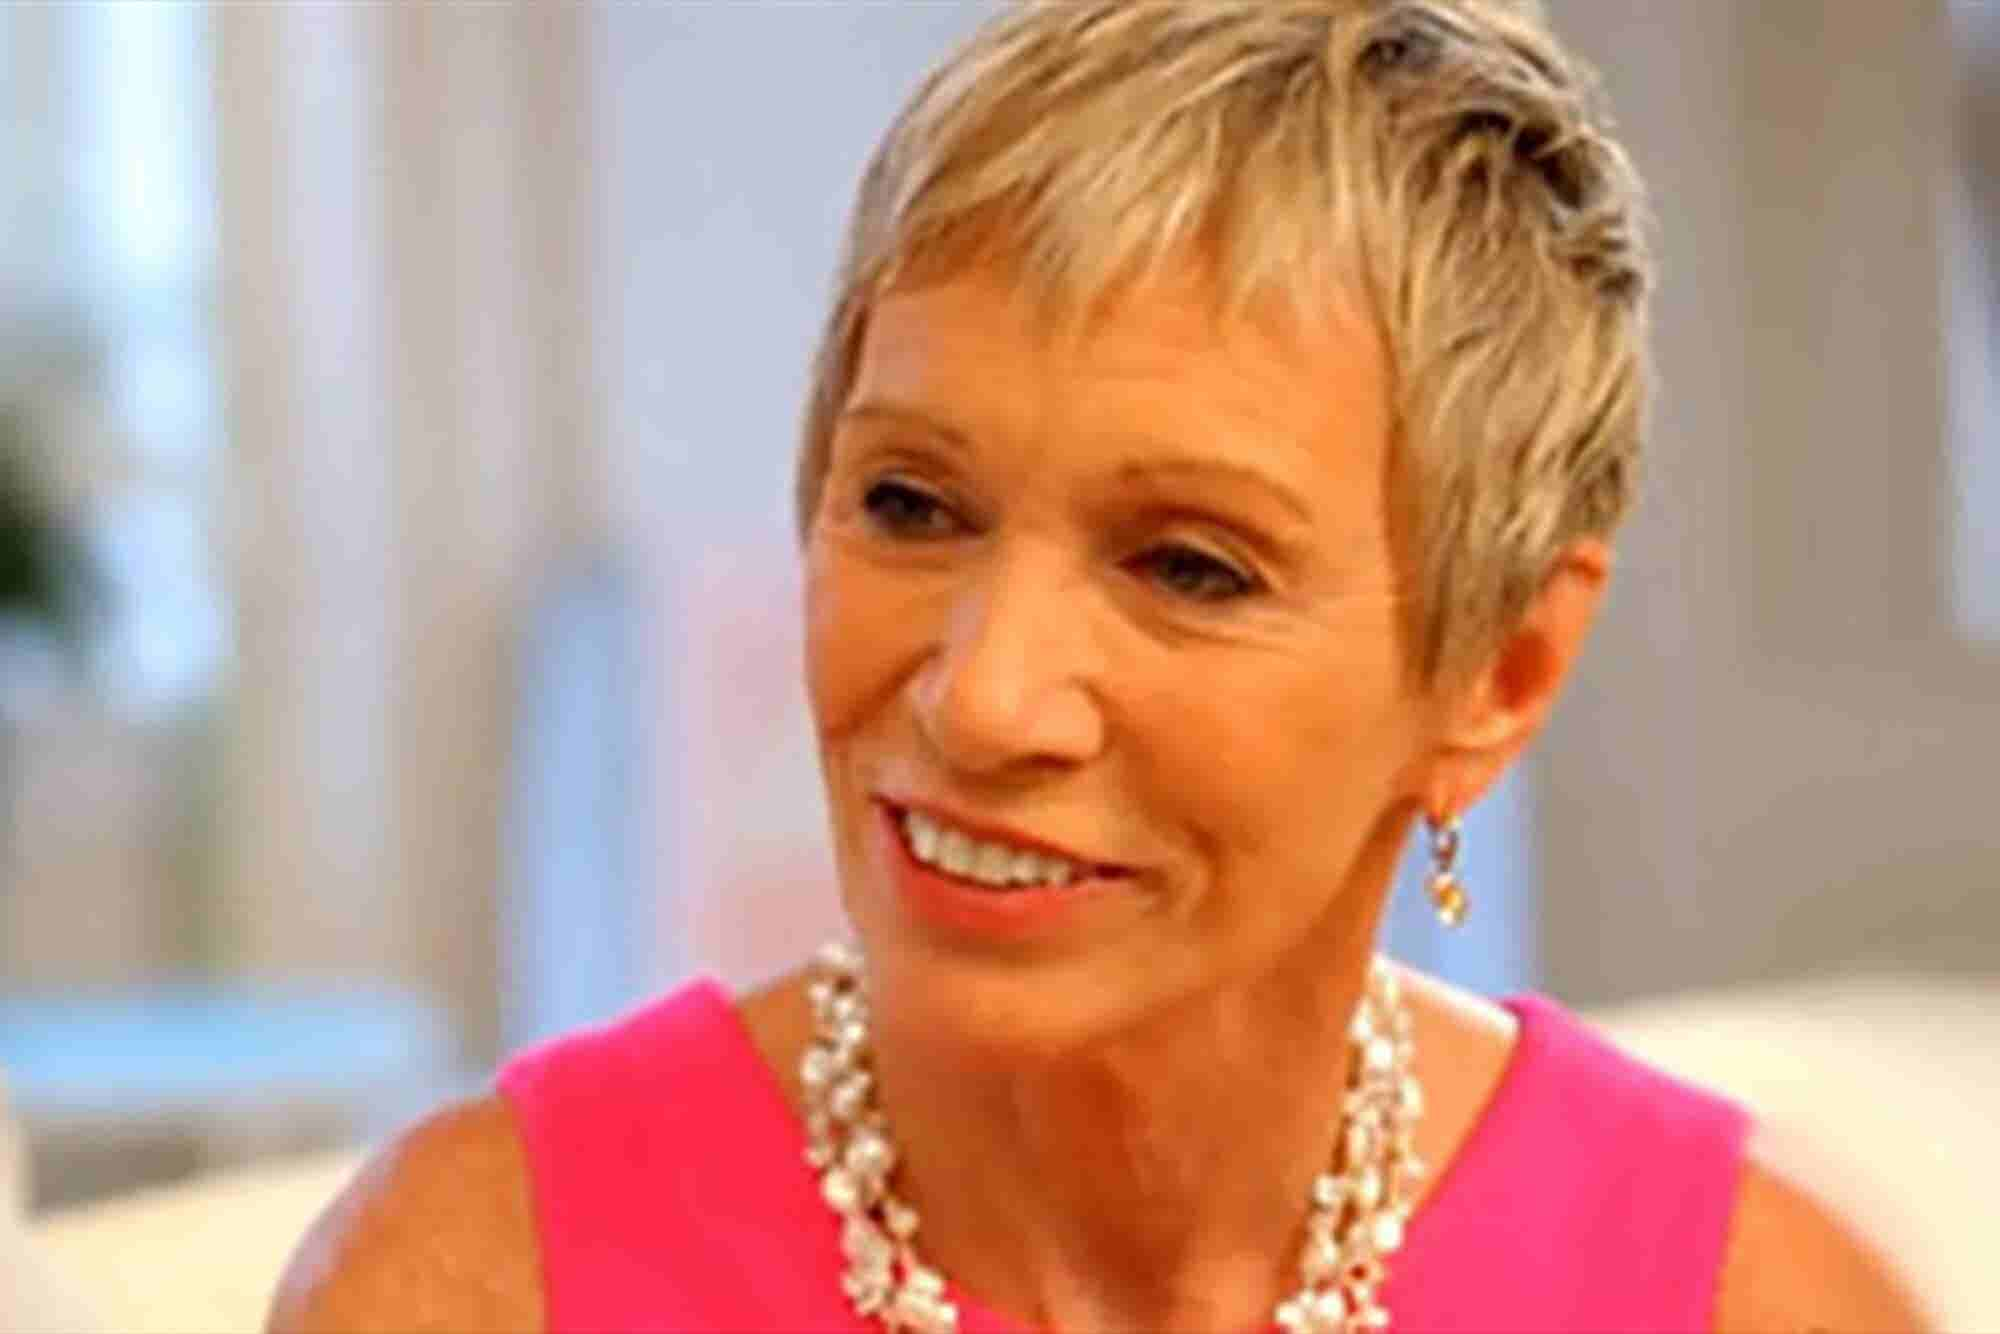 Barbara Corcoran: 'The Joy Is in the Getting There'